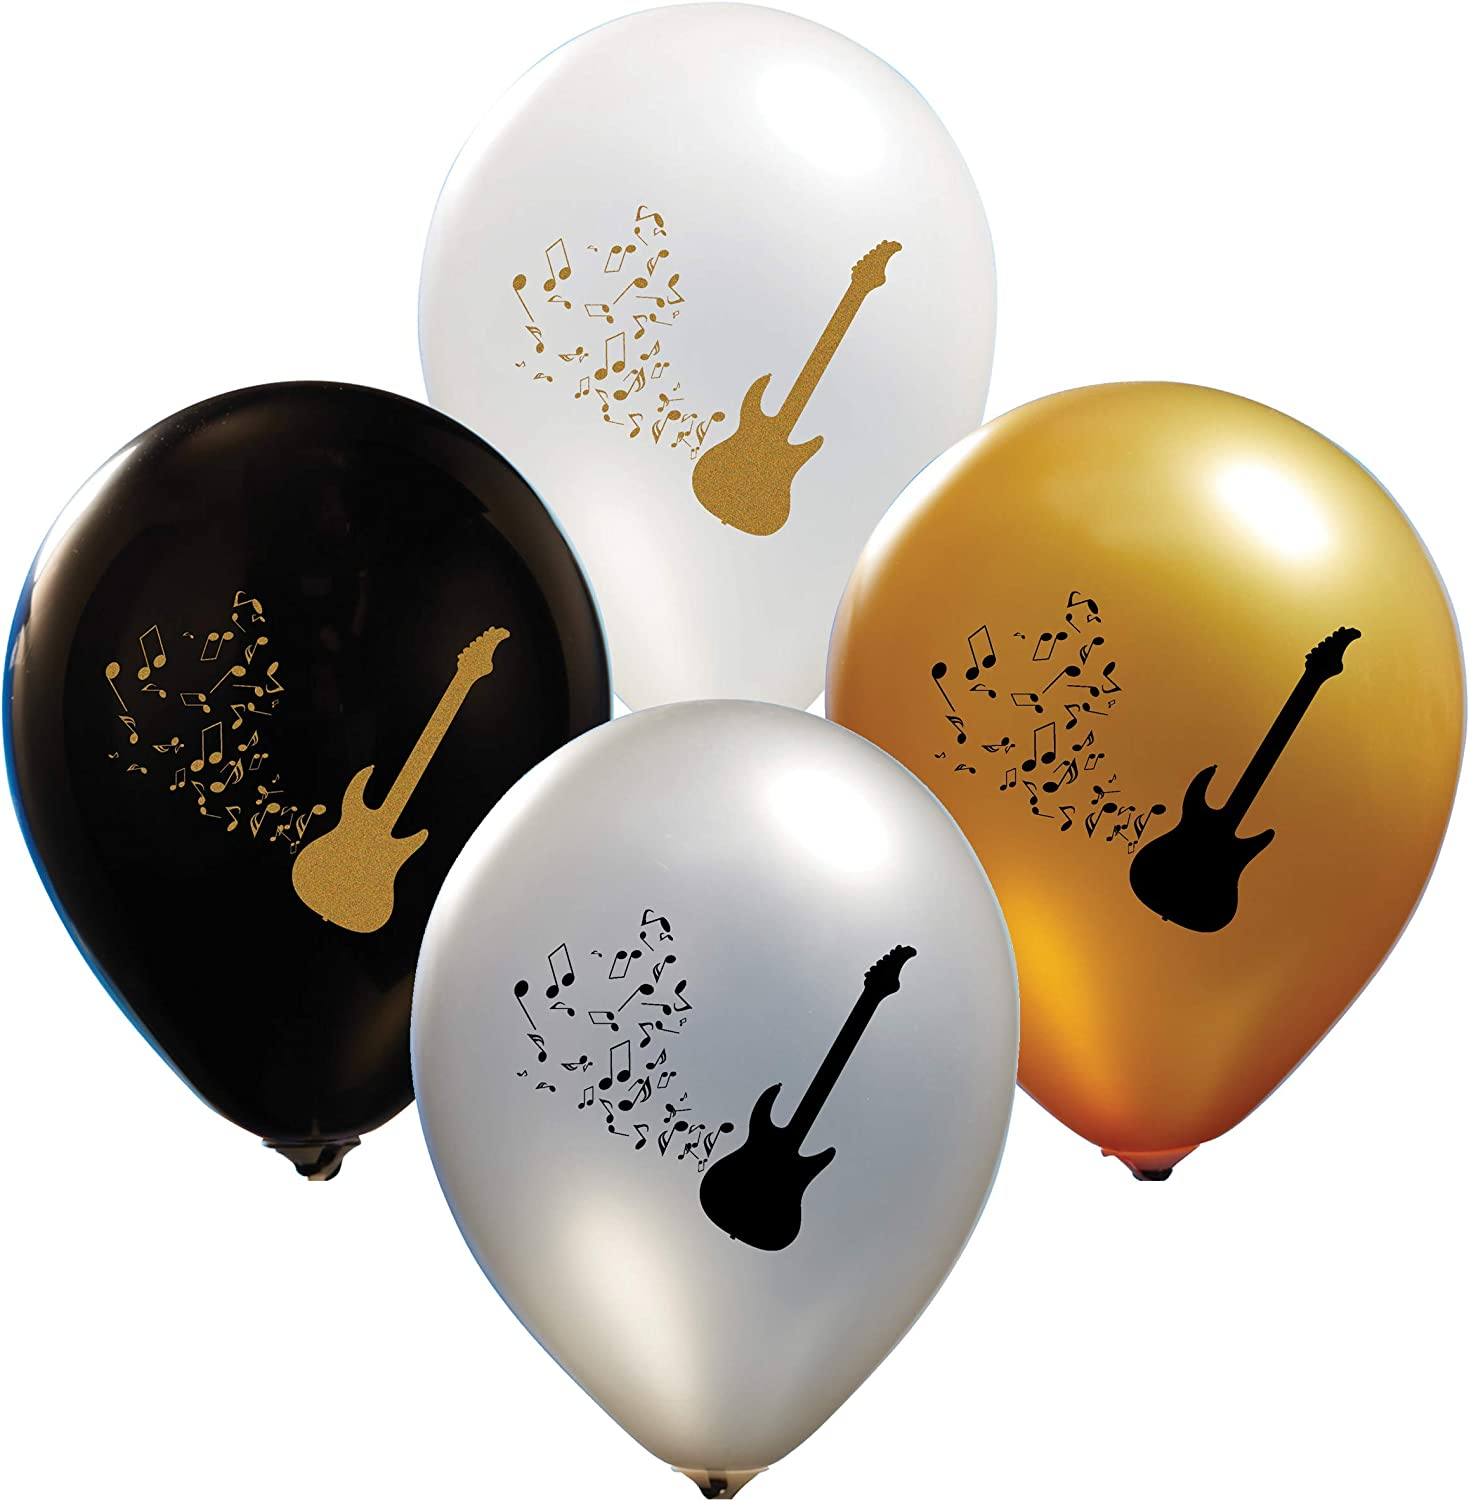 """Party Zone Guitar Balloons for Party of Rock Star Birthday, Guitar Party Décor, Electric Guitar Latex Balloons - 12"""" Latex for Birthday Parties or any Event - Use Air, Helium Party Décor"""